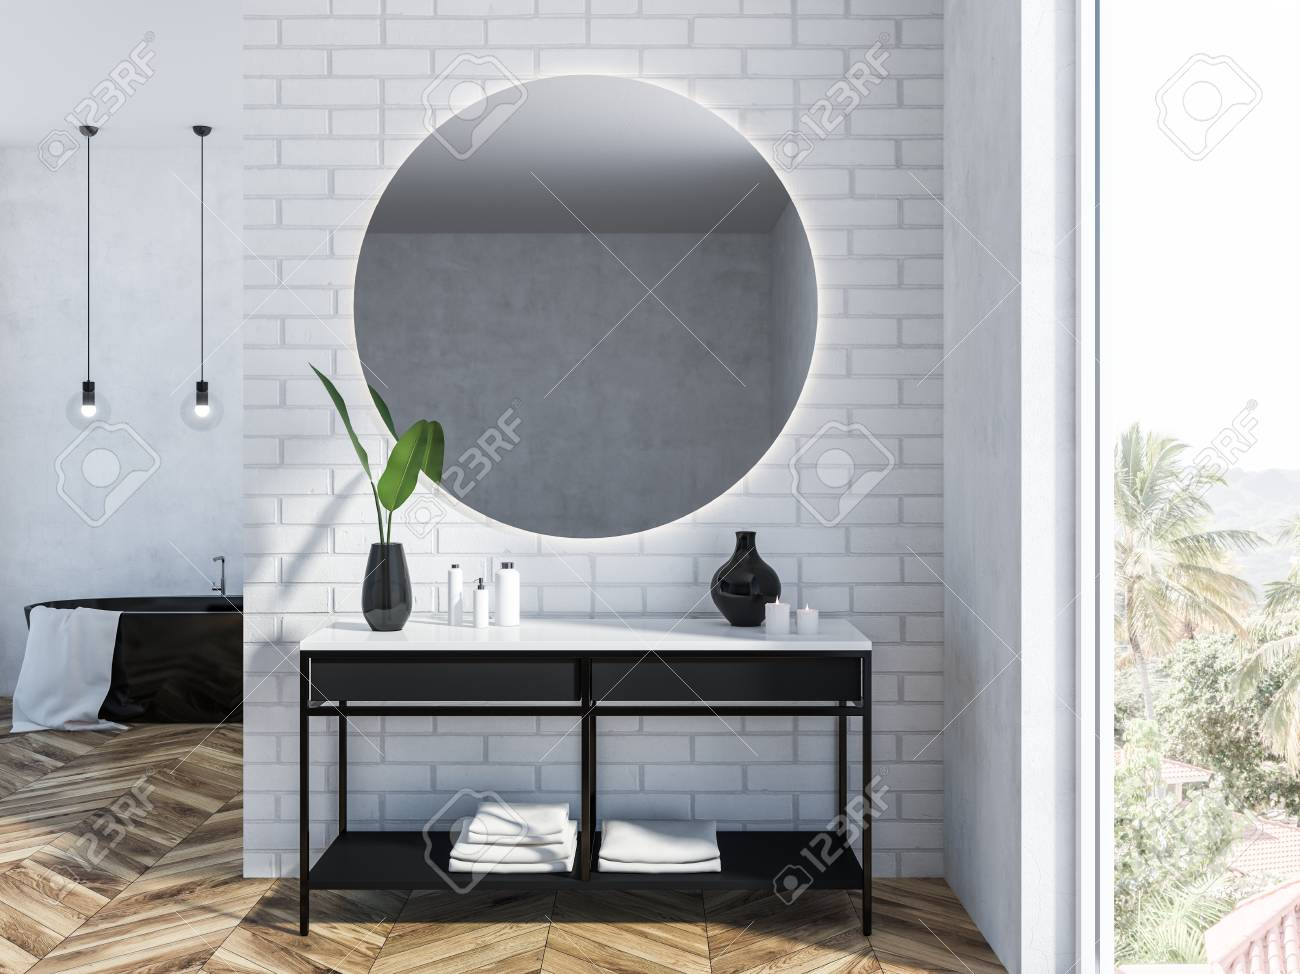 White Brick Bathroom Interior With A Black Bathtub A Round Mirror Stock Photo Picture And Royalty Free Image Image 109249448